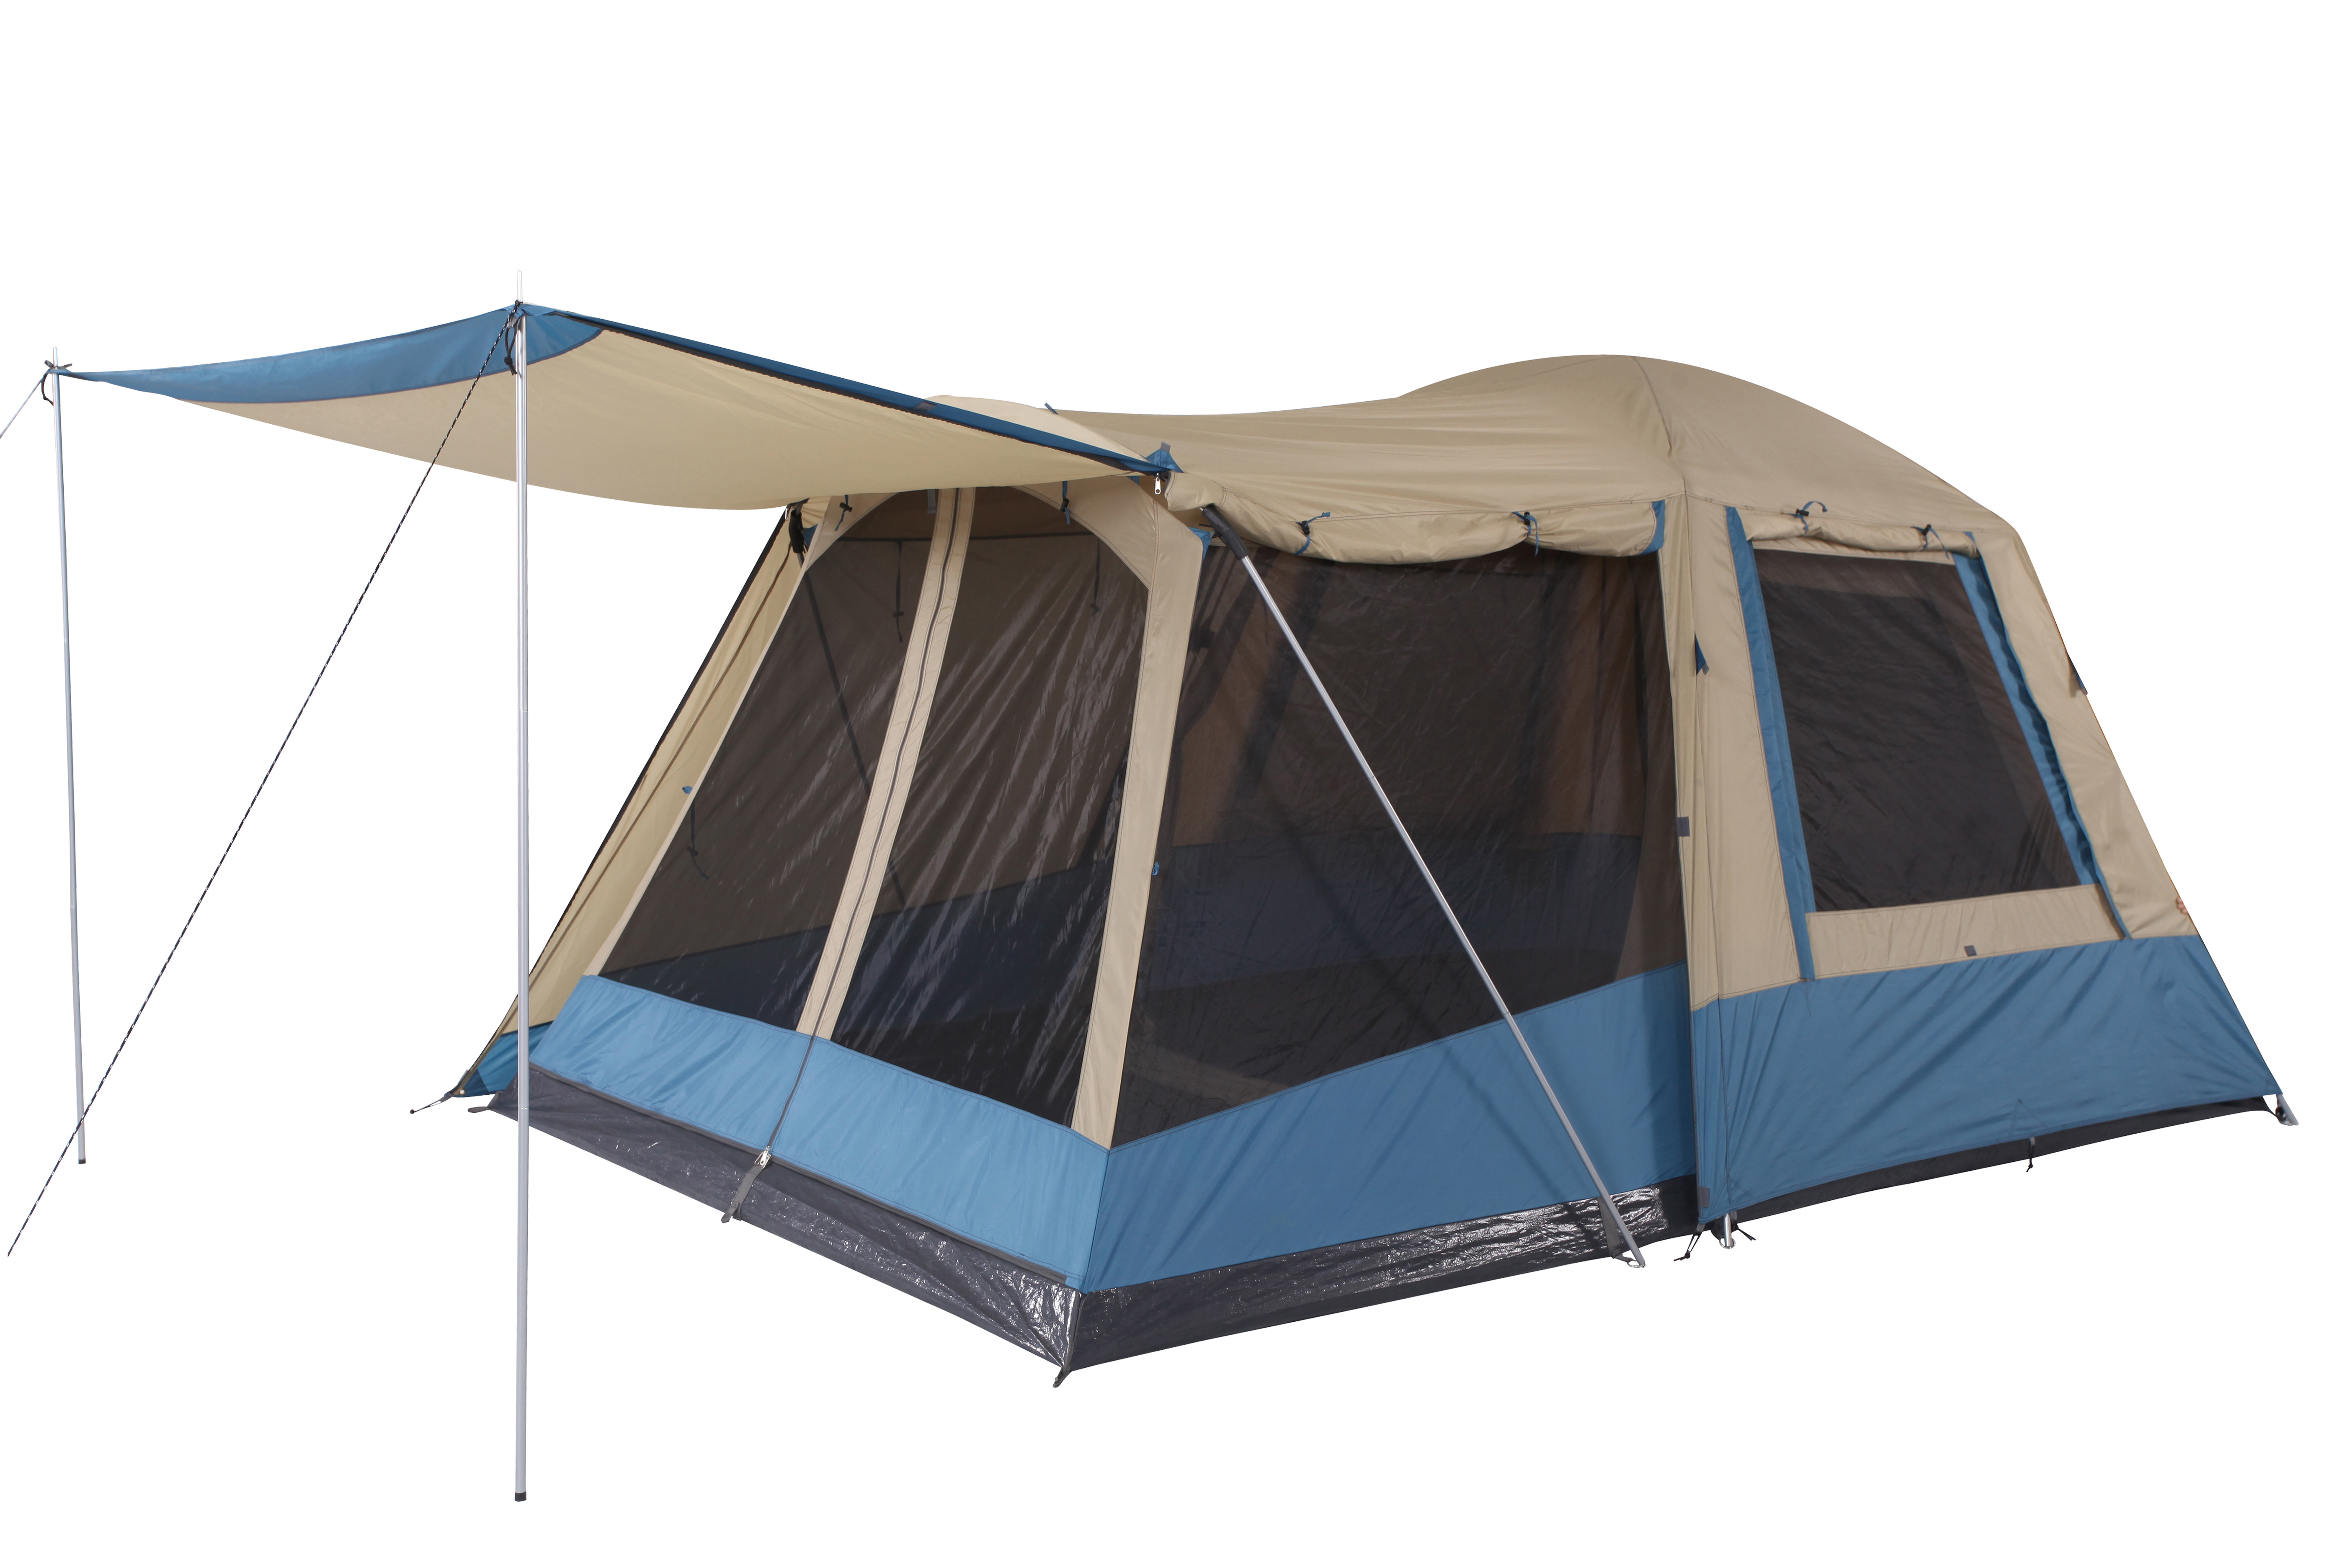 Oztrail family 6 dome tent 2 room 6 person spacious for Small 3 room tent